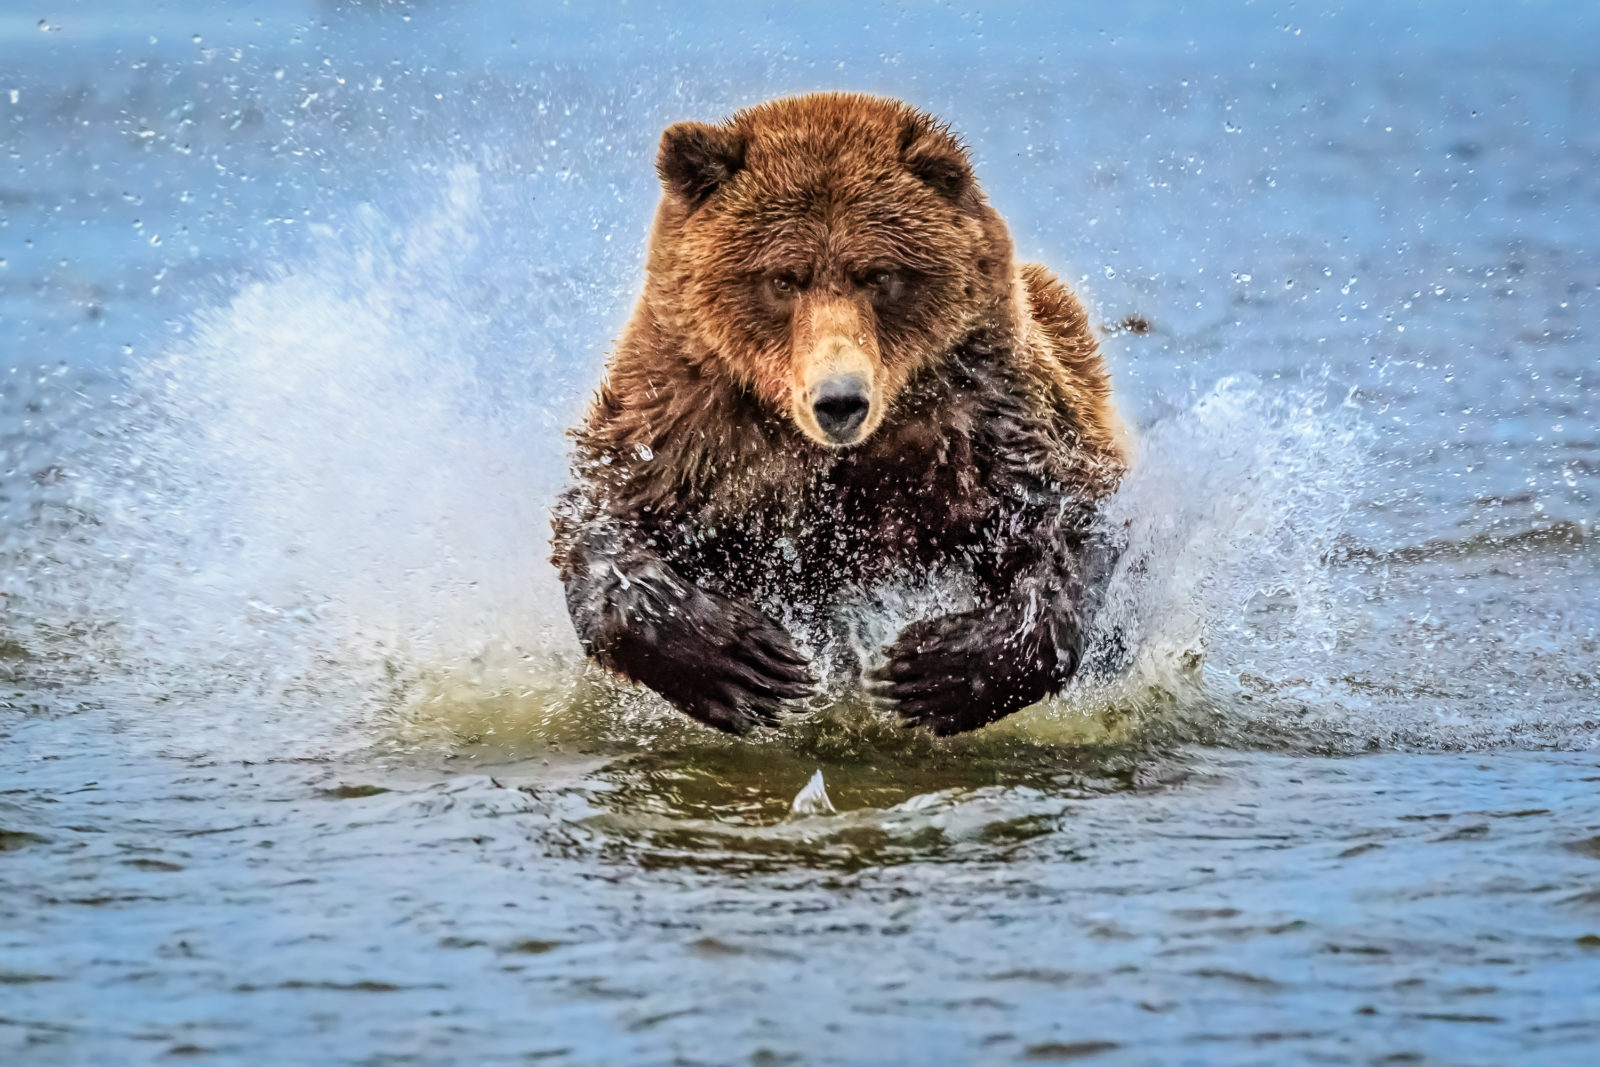 Bear chasing after breakfast